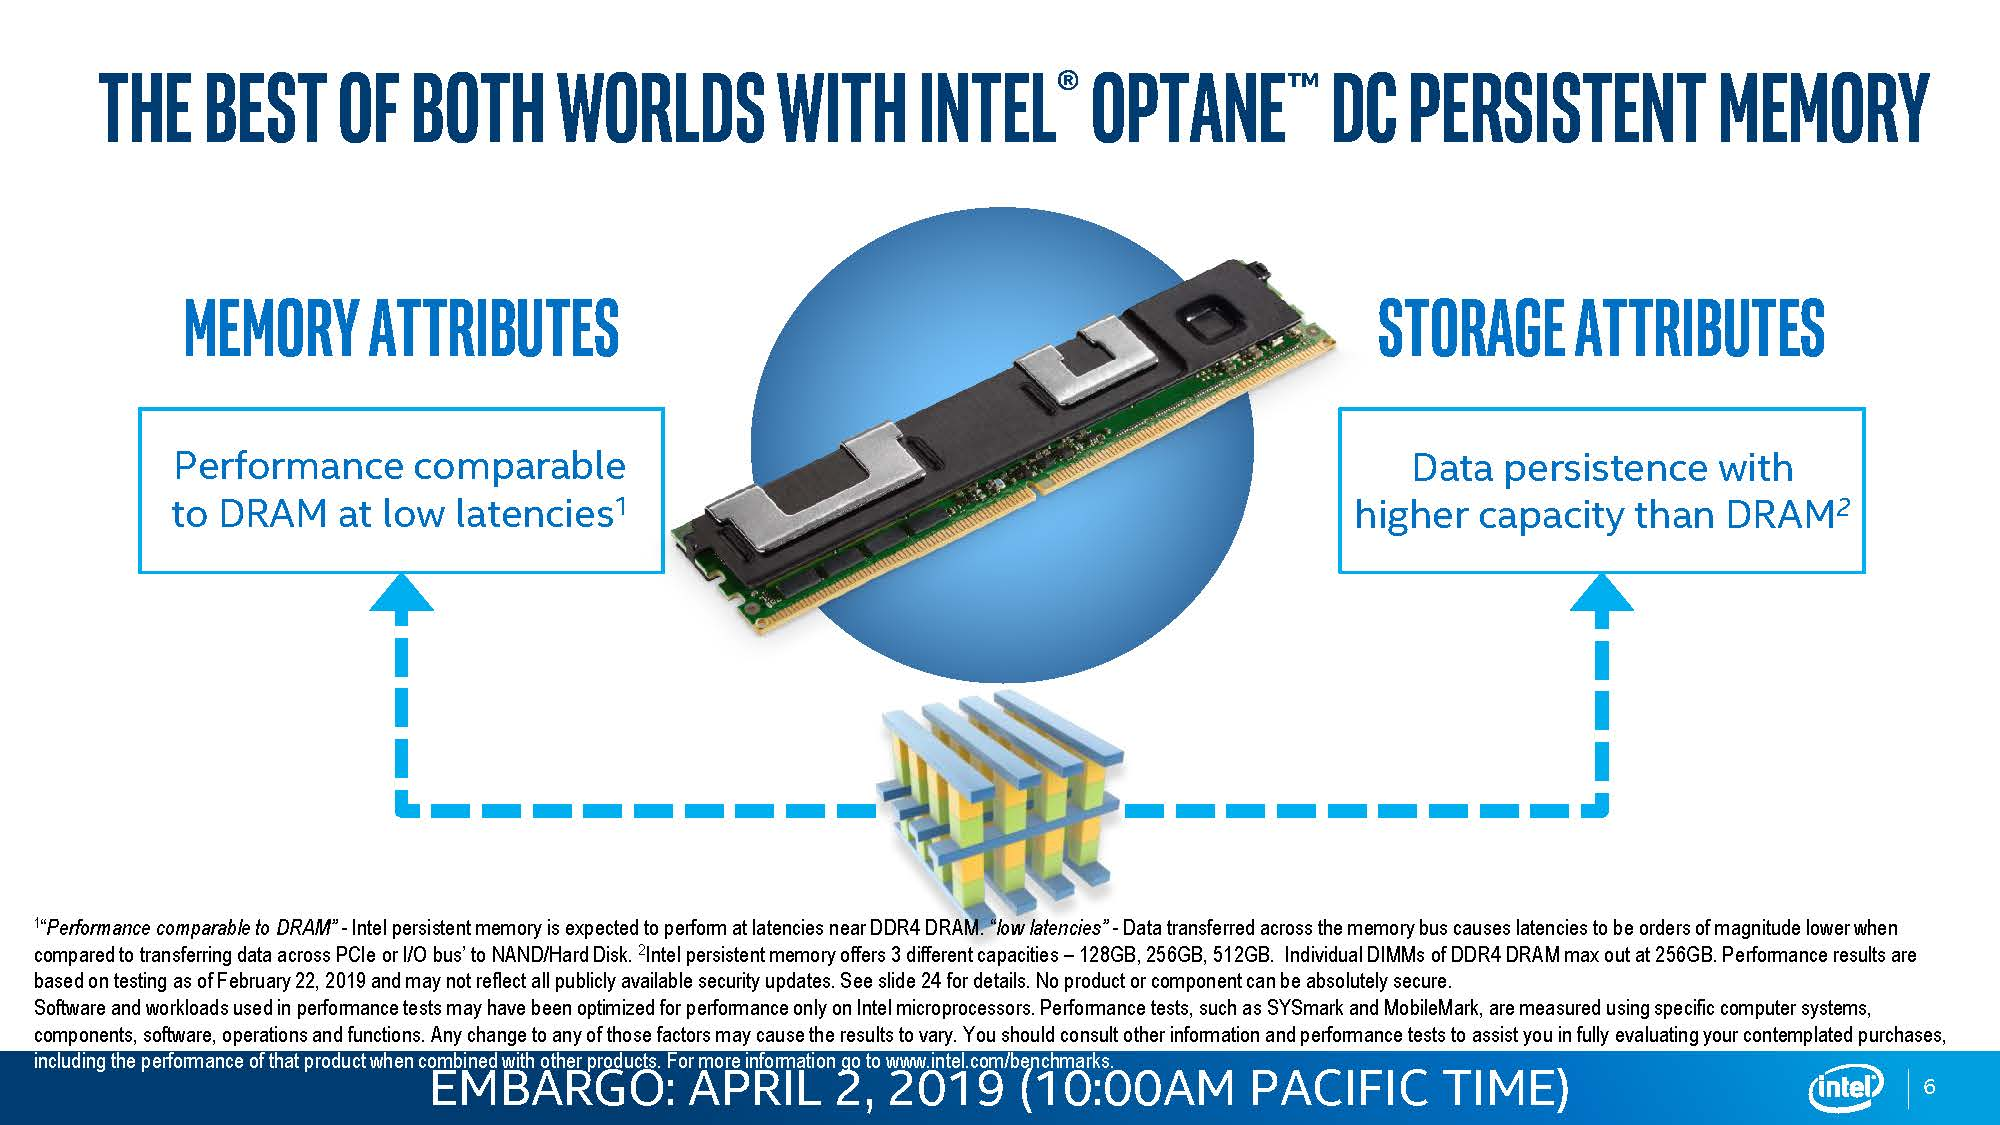 Intel Optane DC Persistent Memory DRAM Latency And Persistent